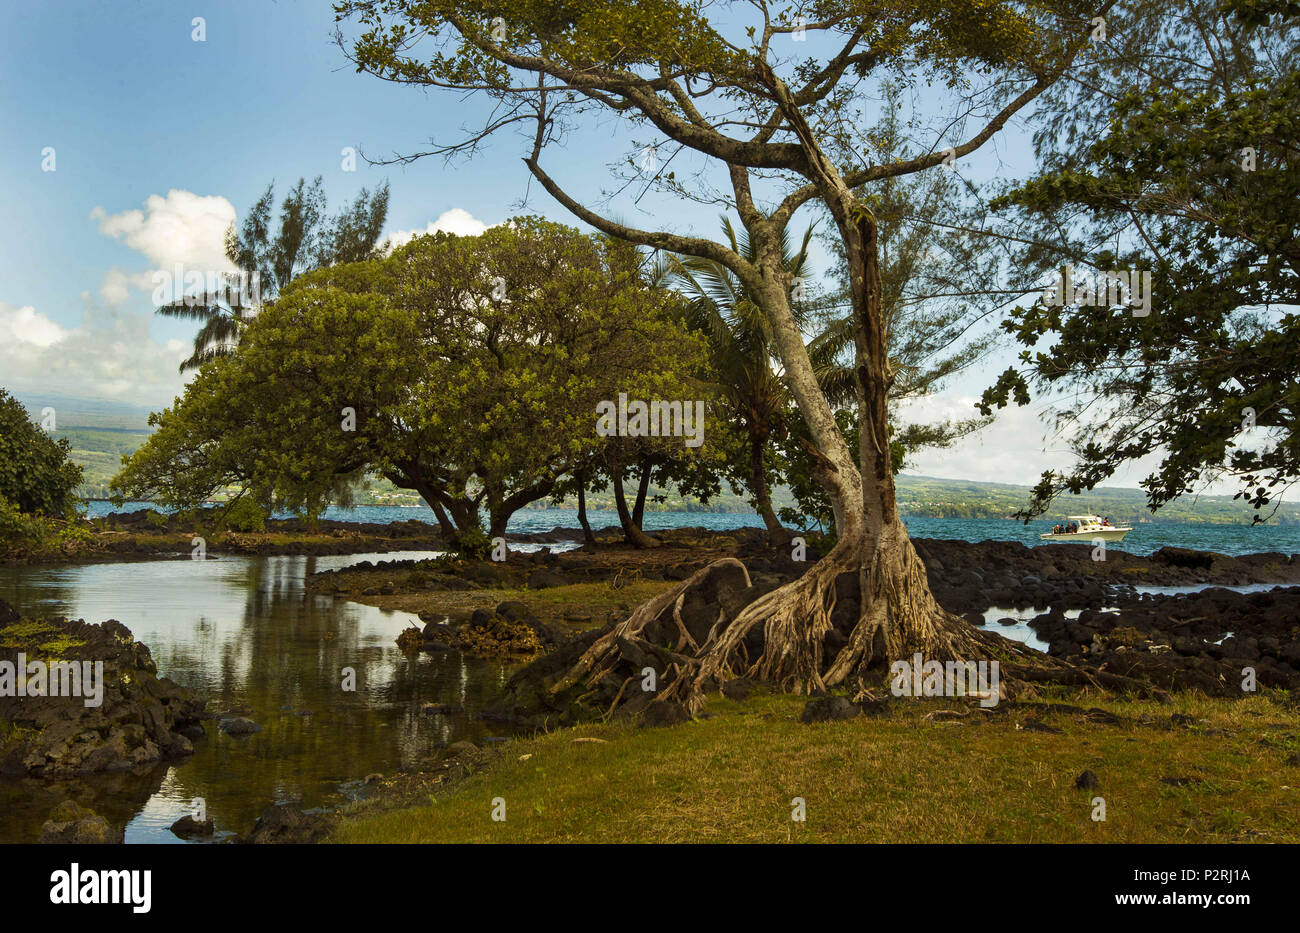 Pahoa, Hawaii, USA. 6th June, 2018. The Hilo Bayfront Beach Park is surrounded in lush vegetation as the Kilauea Volcano lower east rift zone continues the eruption on Wednesday, June 6, 2018, in Pahoa, Hawaii. Credit: L.E. Baskow/ZUMA Wire/Alamy Live News Stock Photo